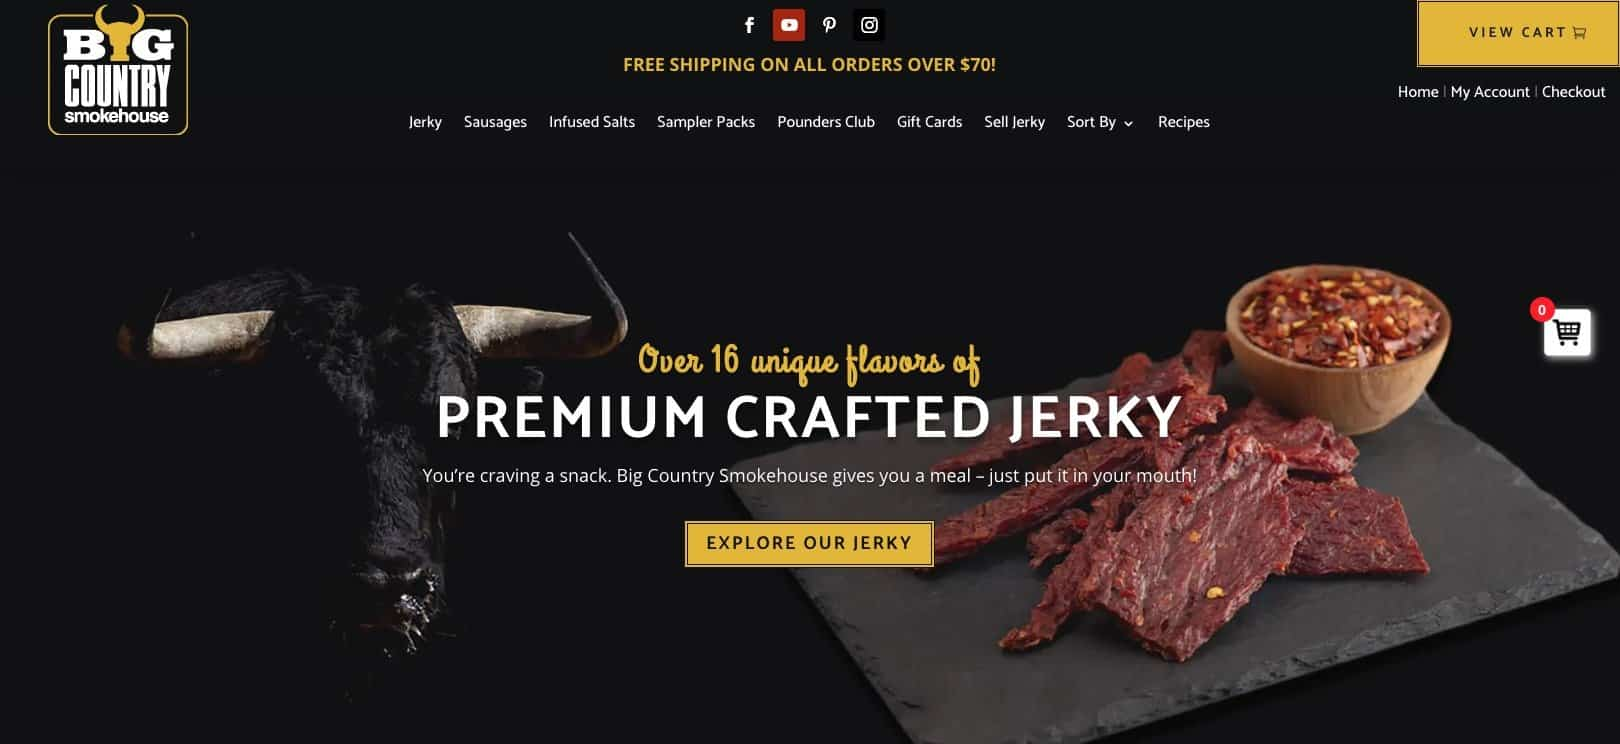 Buy Jerky Online - Big Country Smokehouse